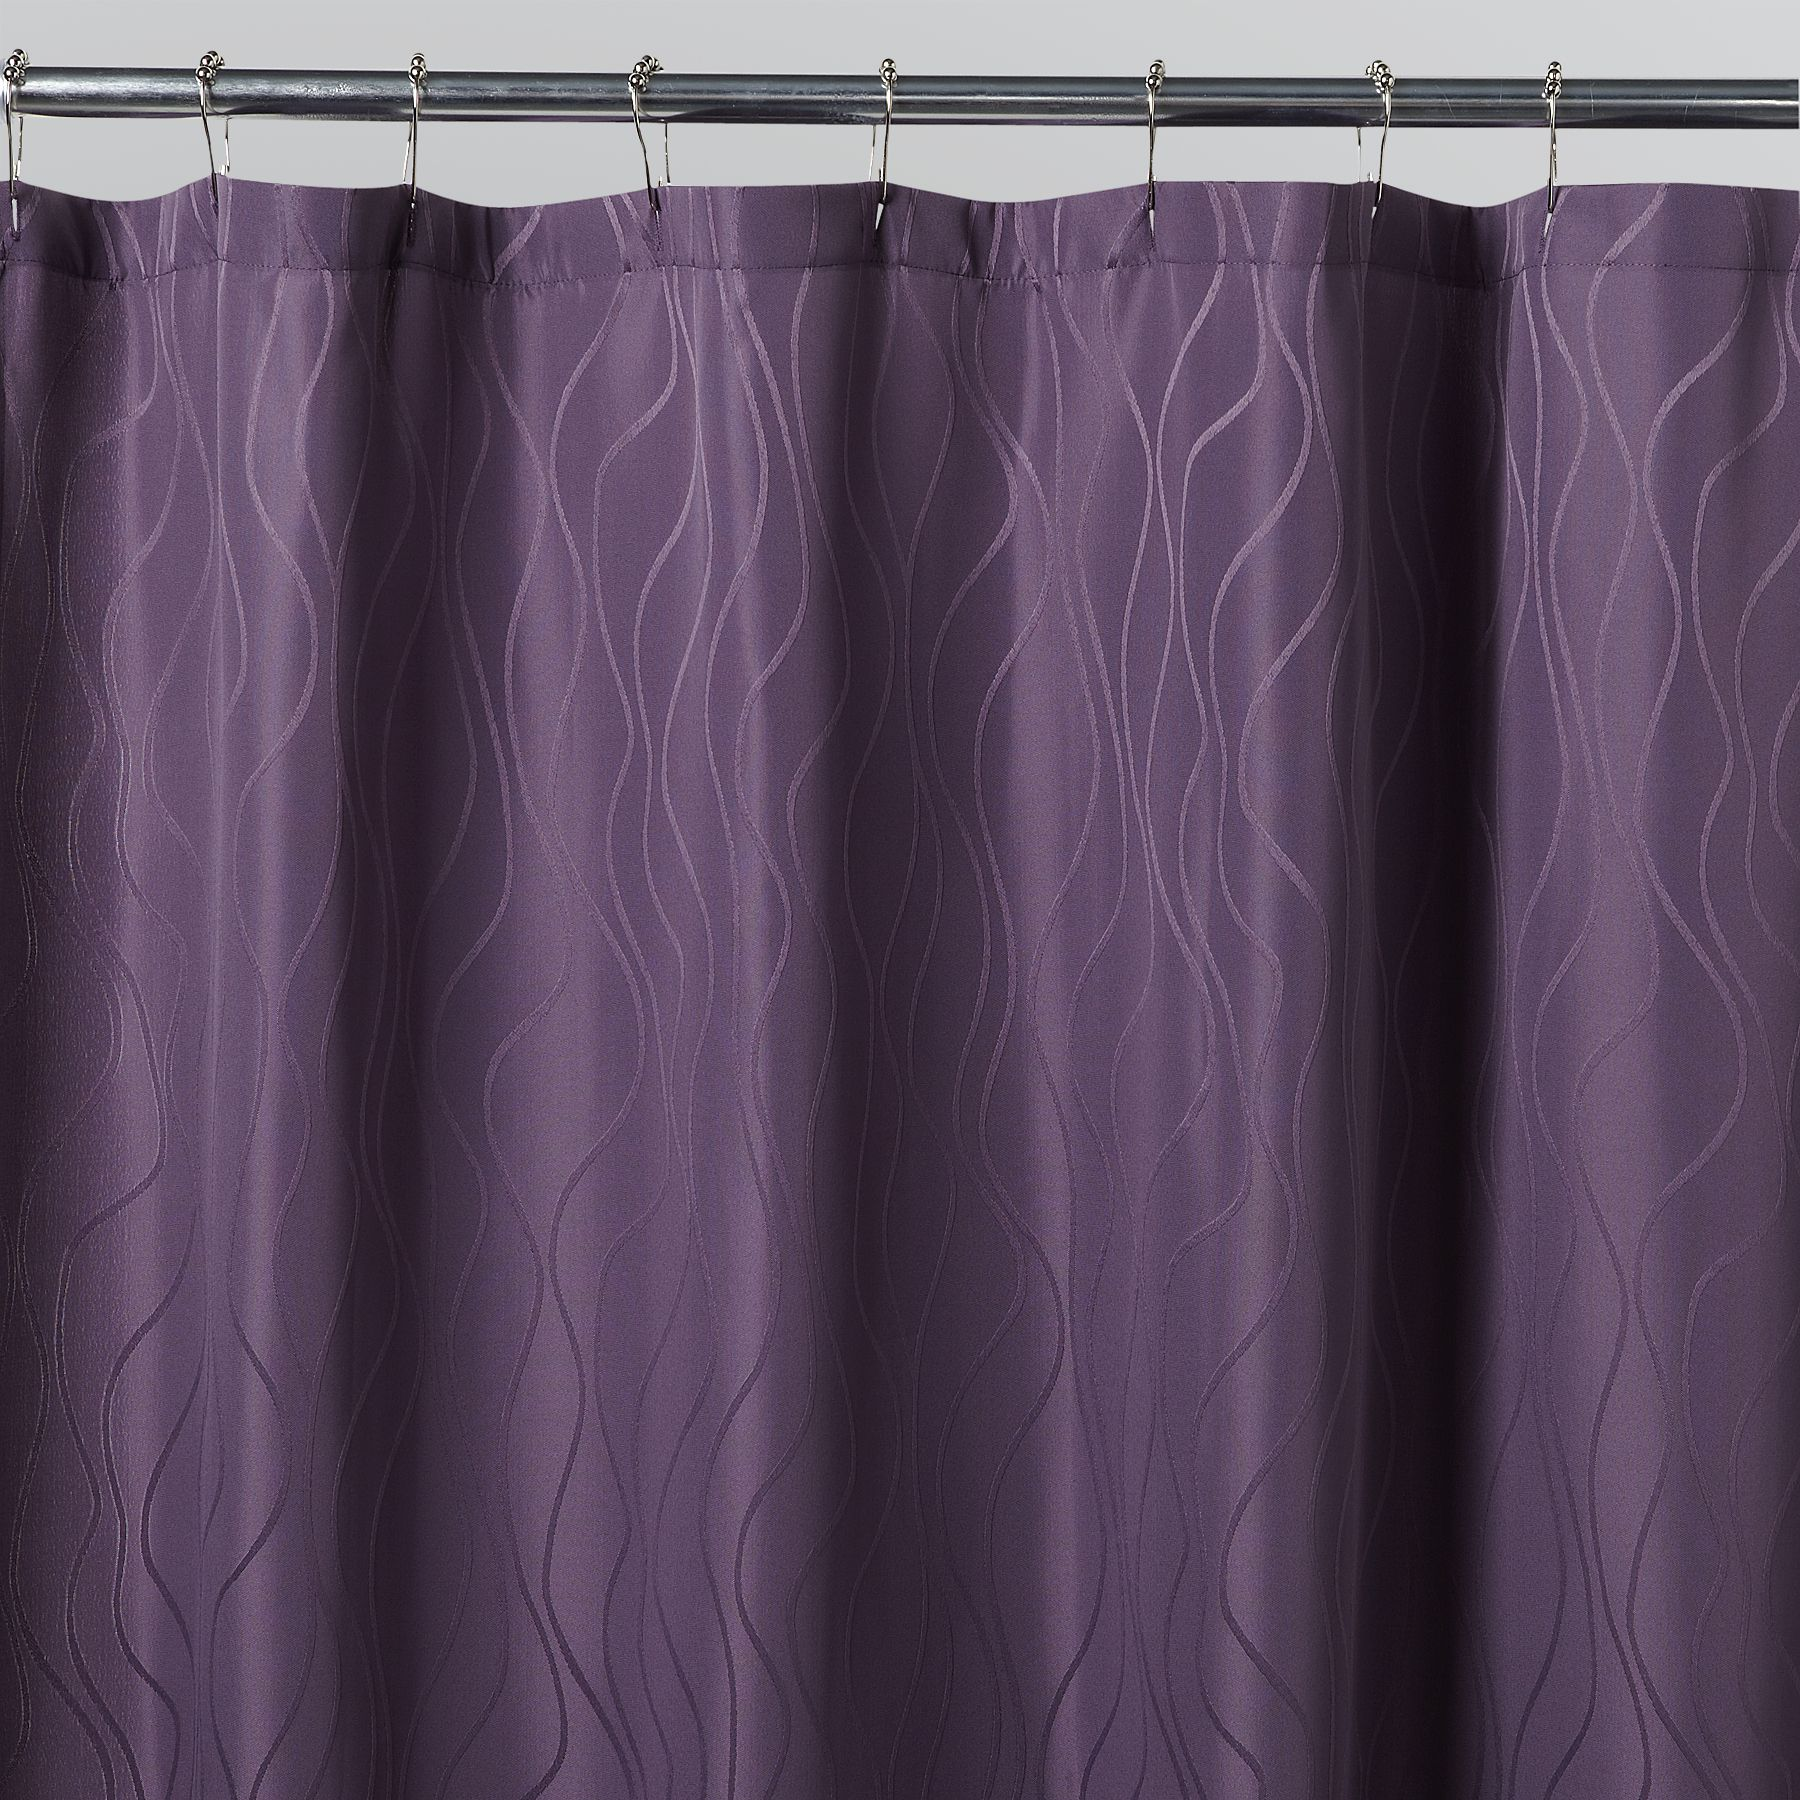 Essential Home Vintage Violet Fabric Shower Curtain